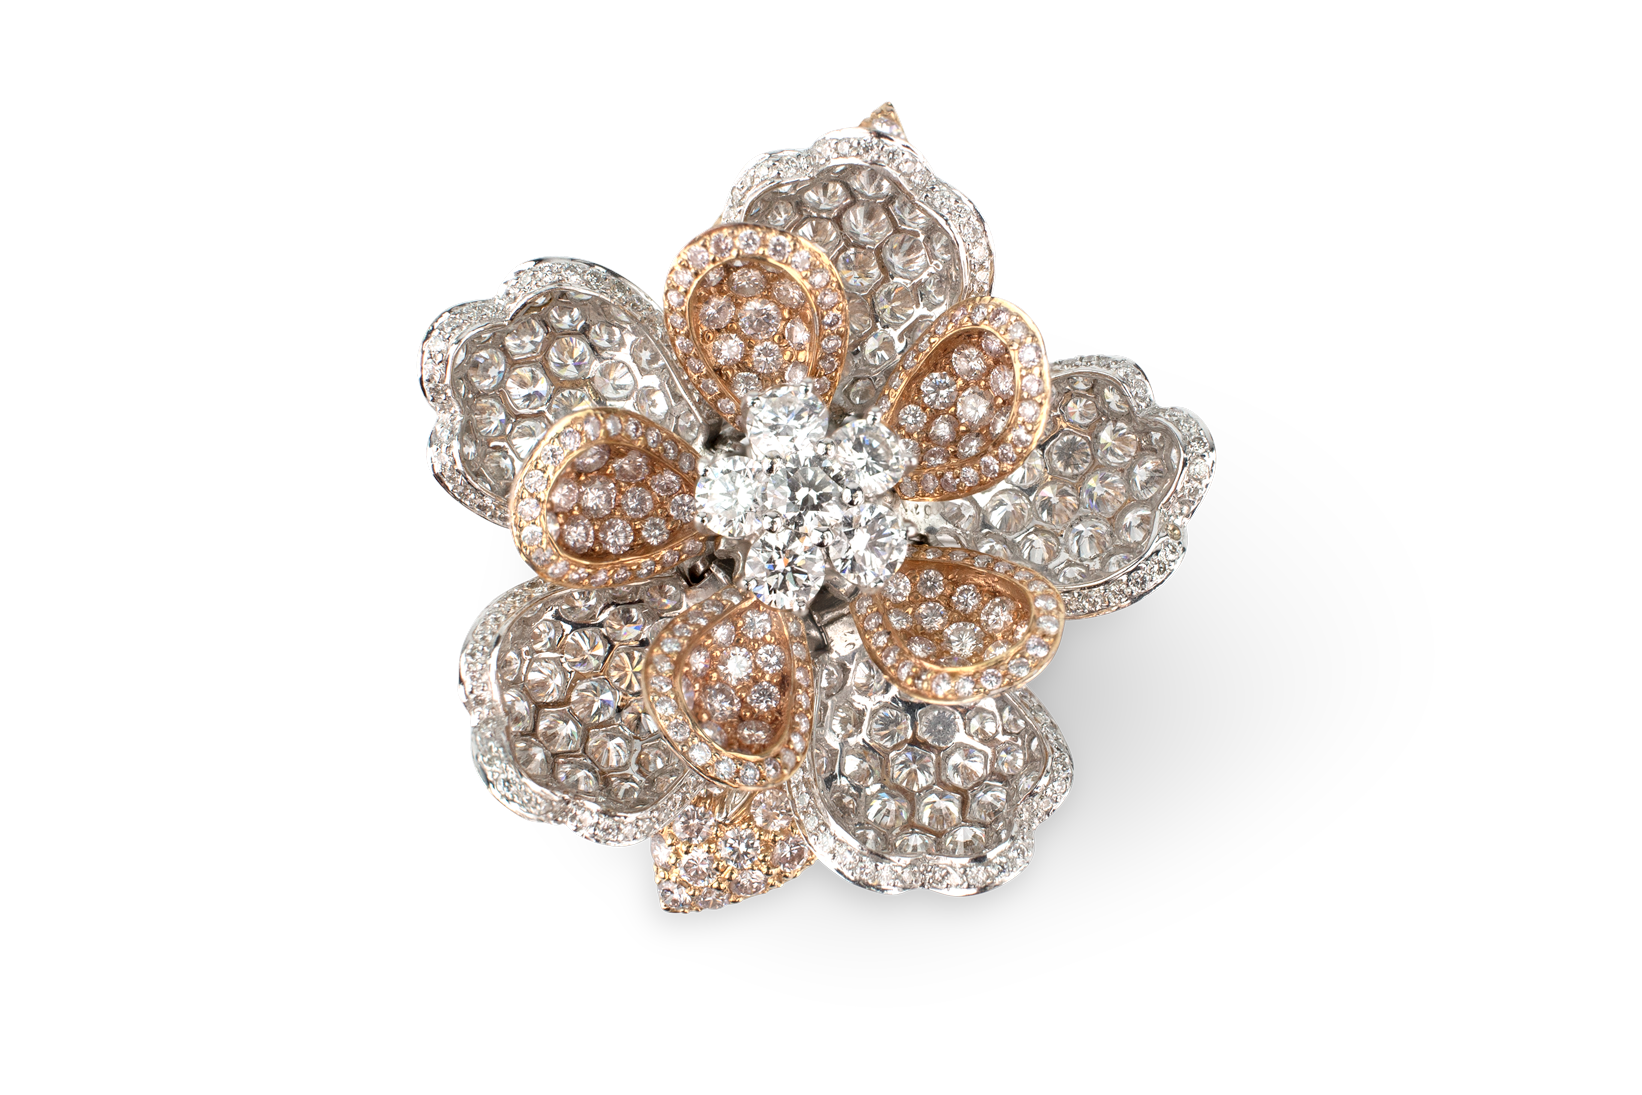 Pink & White Diamond Flower Ring - Moveable Petals-1